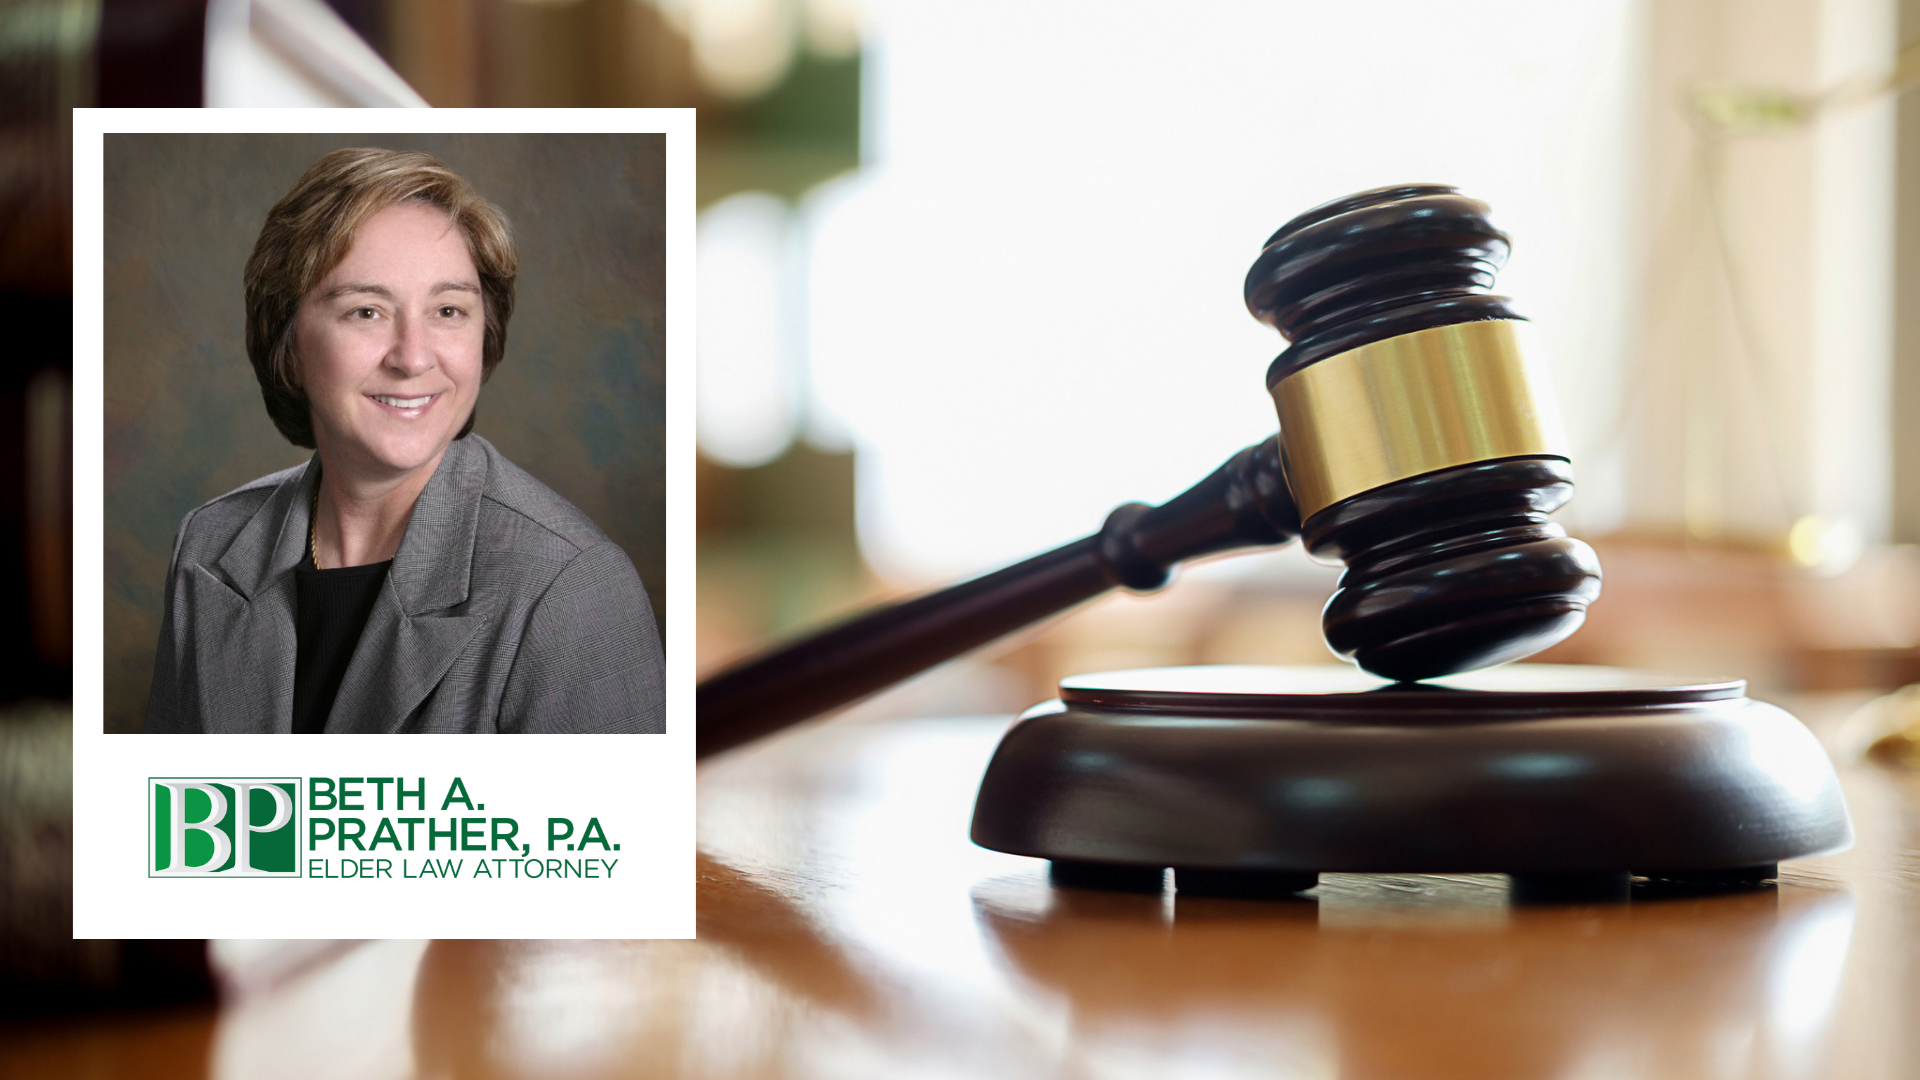 did-you-know-our-very-own-beth-a-prather-is-a-super-lawyer